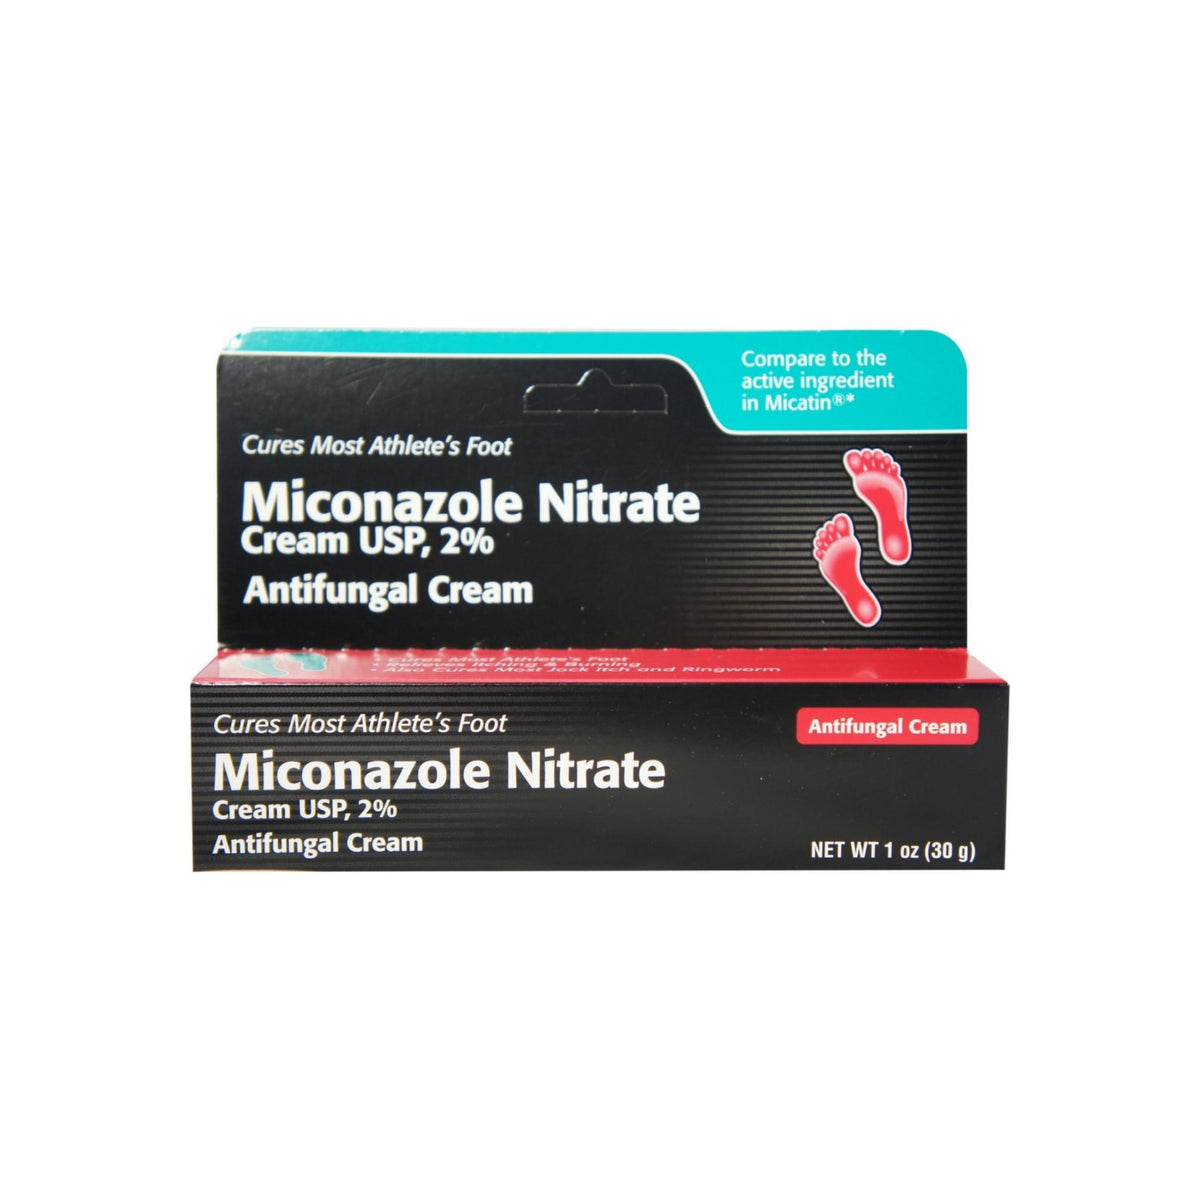 Miconazole Nitrate 2% Antifungal Cream 1 Oz– Pharmapacks